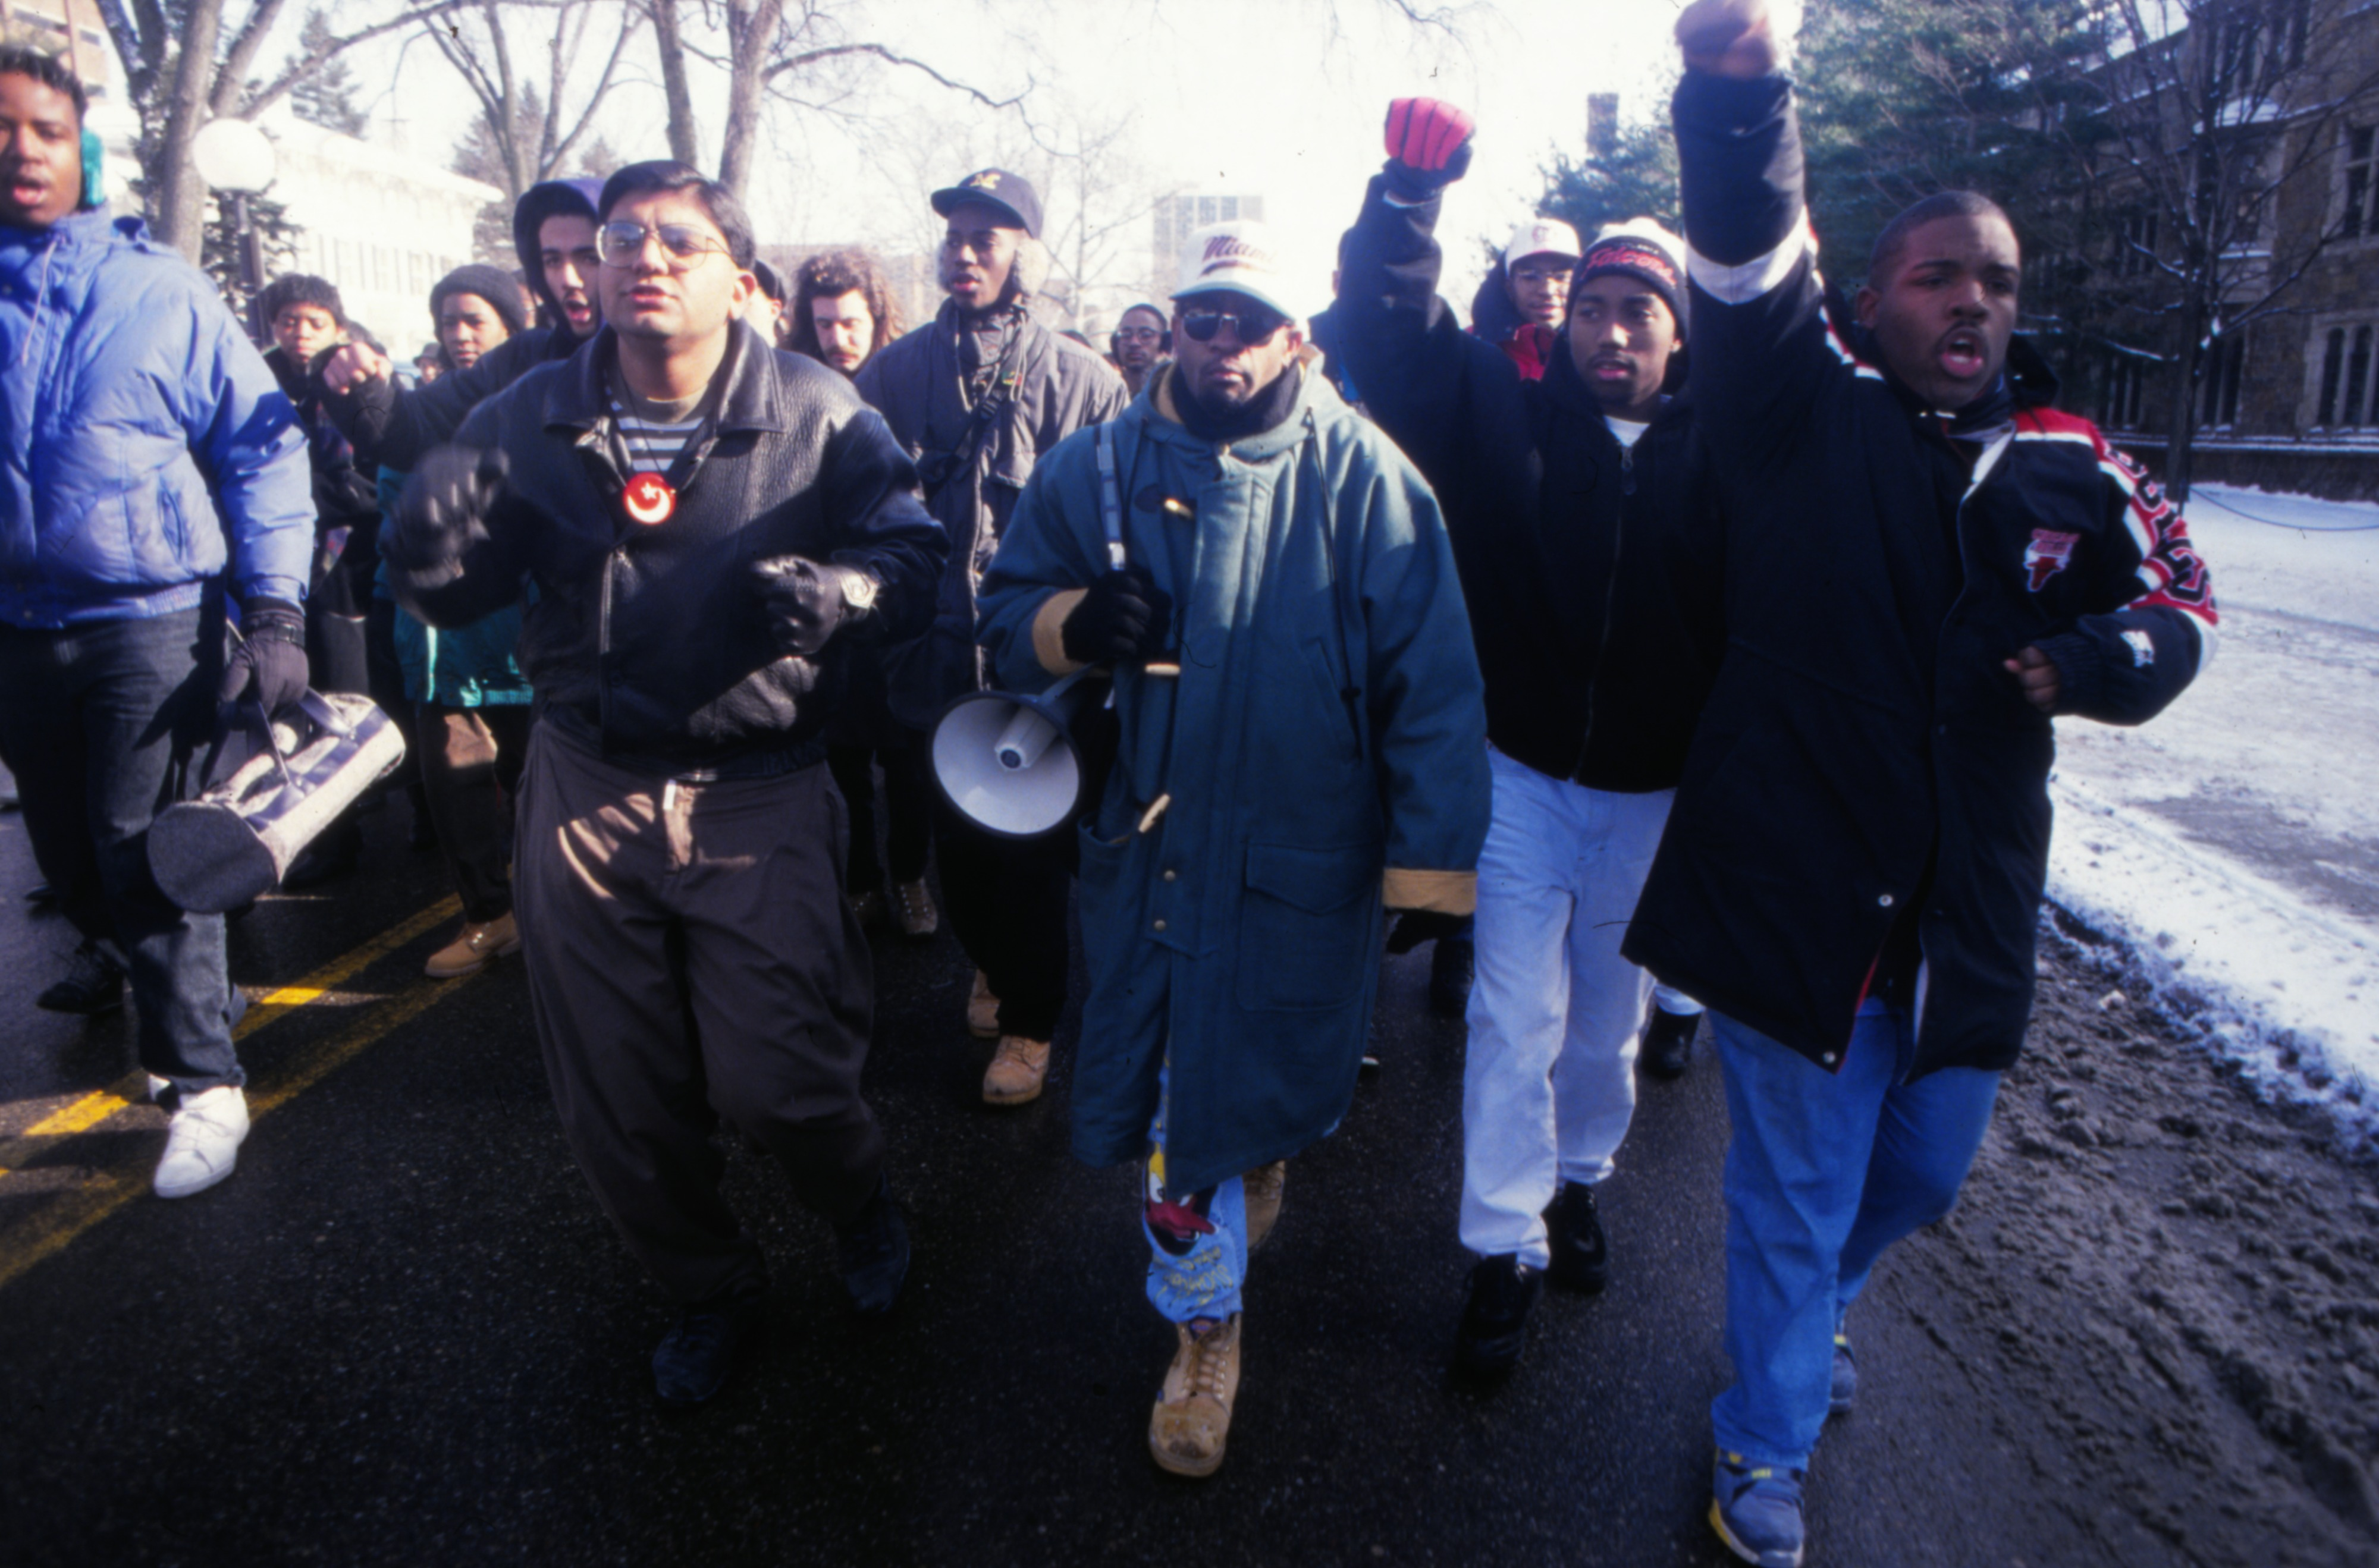 Unity March at the University of Michigan, MLK Day, January 20, 1992 image